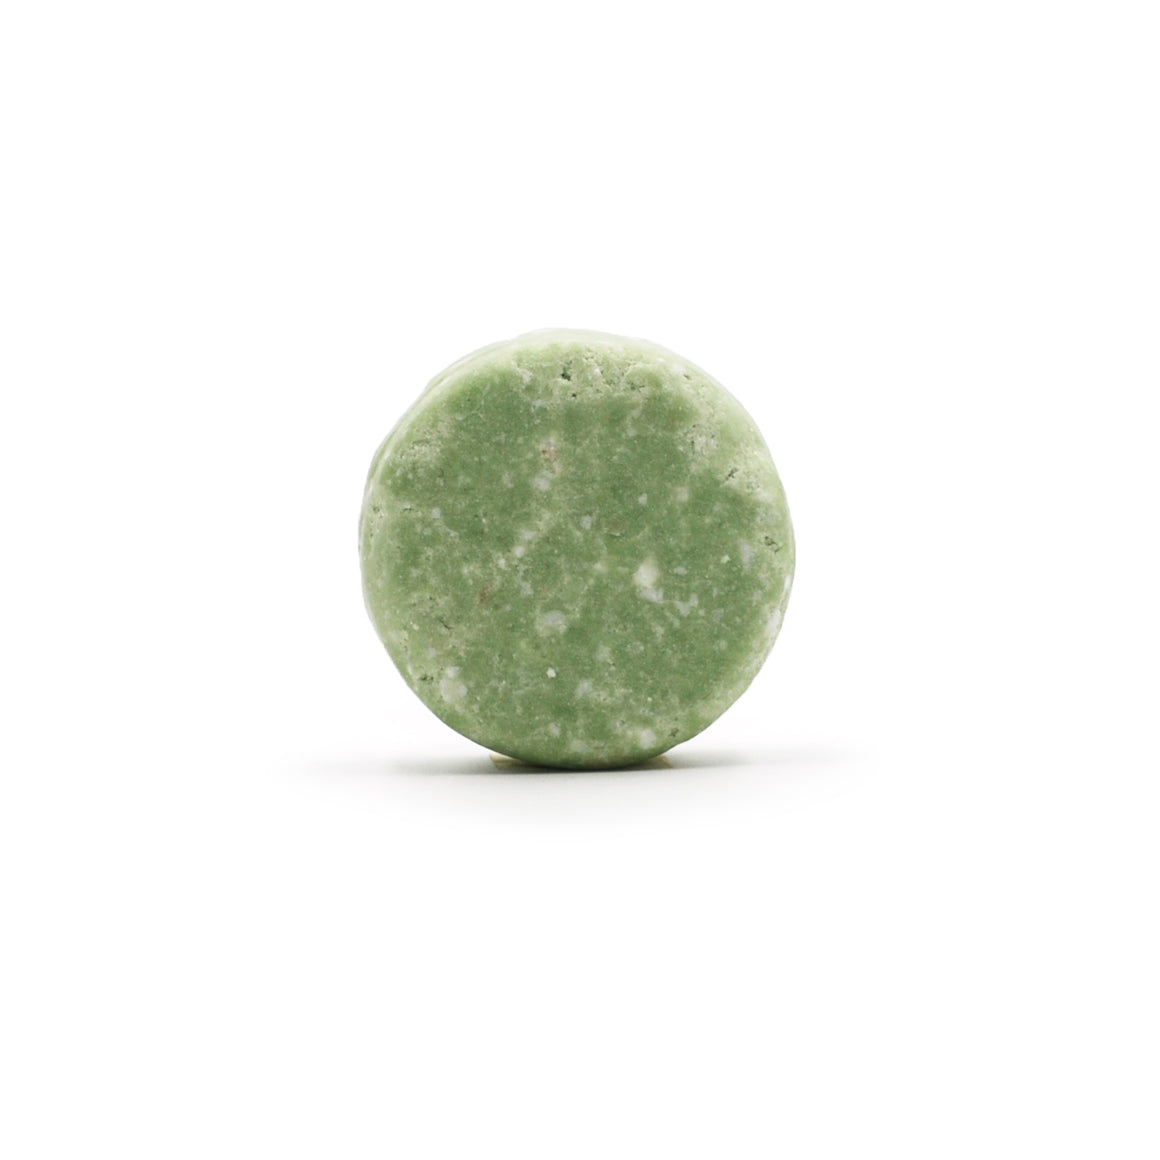 Shampoo Bar - Eucalyptus Mint